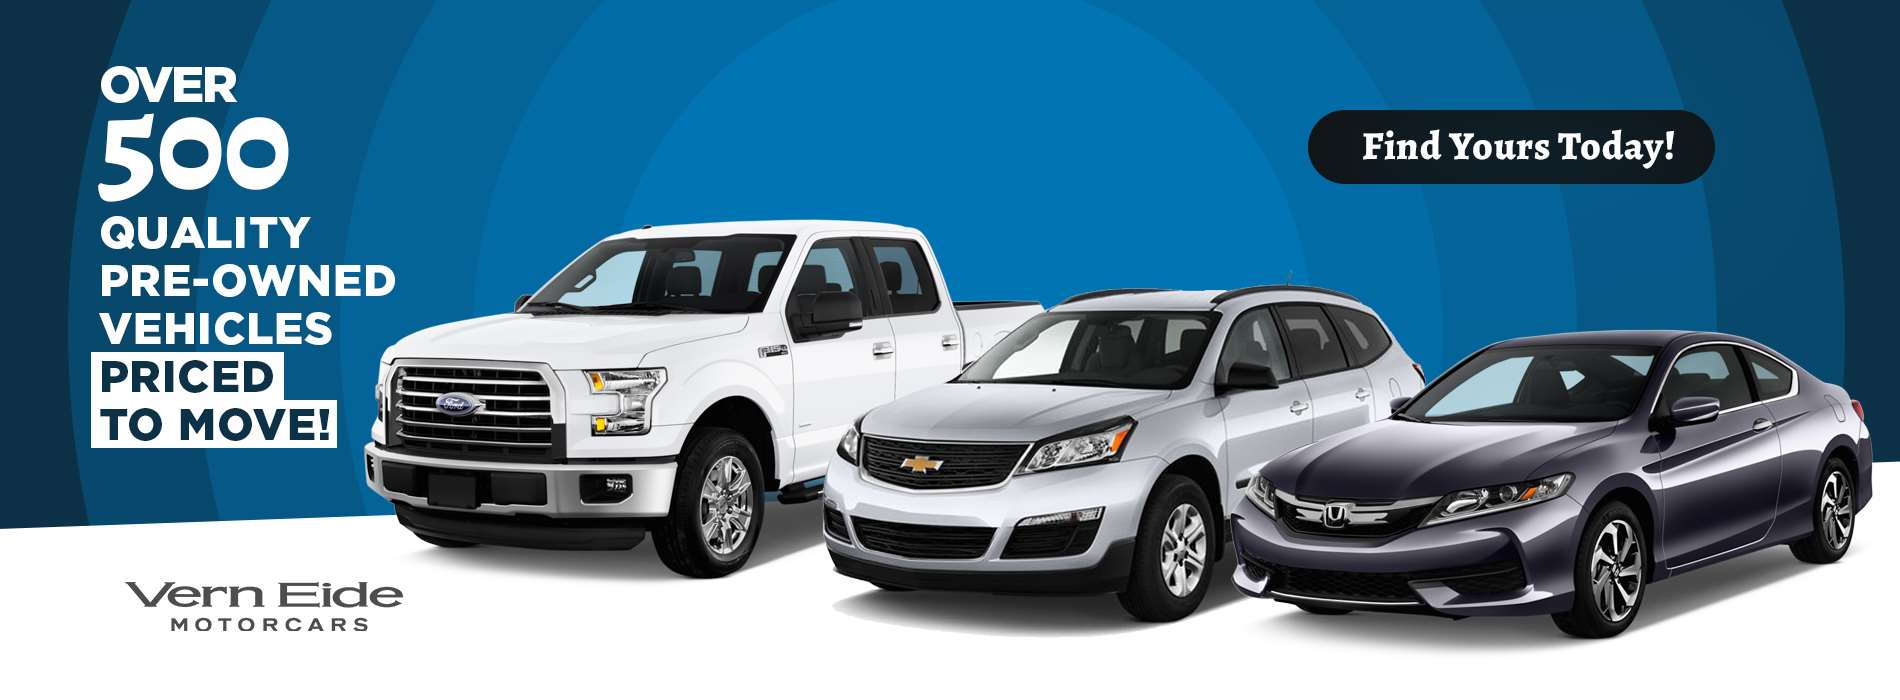 Honda - Over 500 Pre-owned Vehicles - April 2019